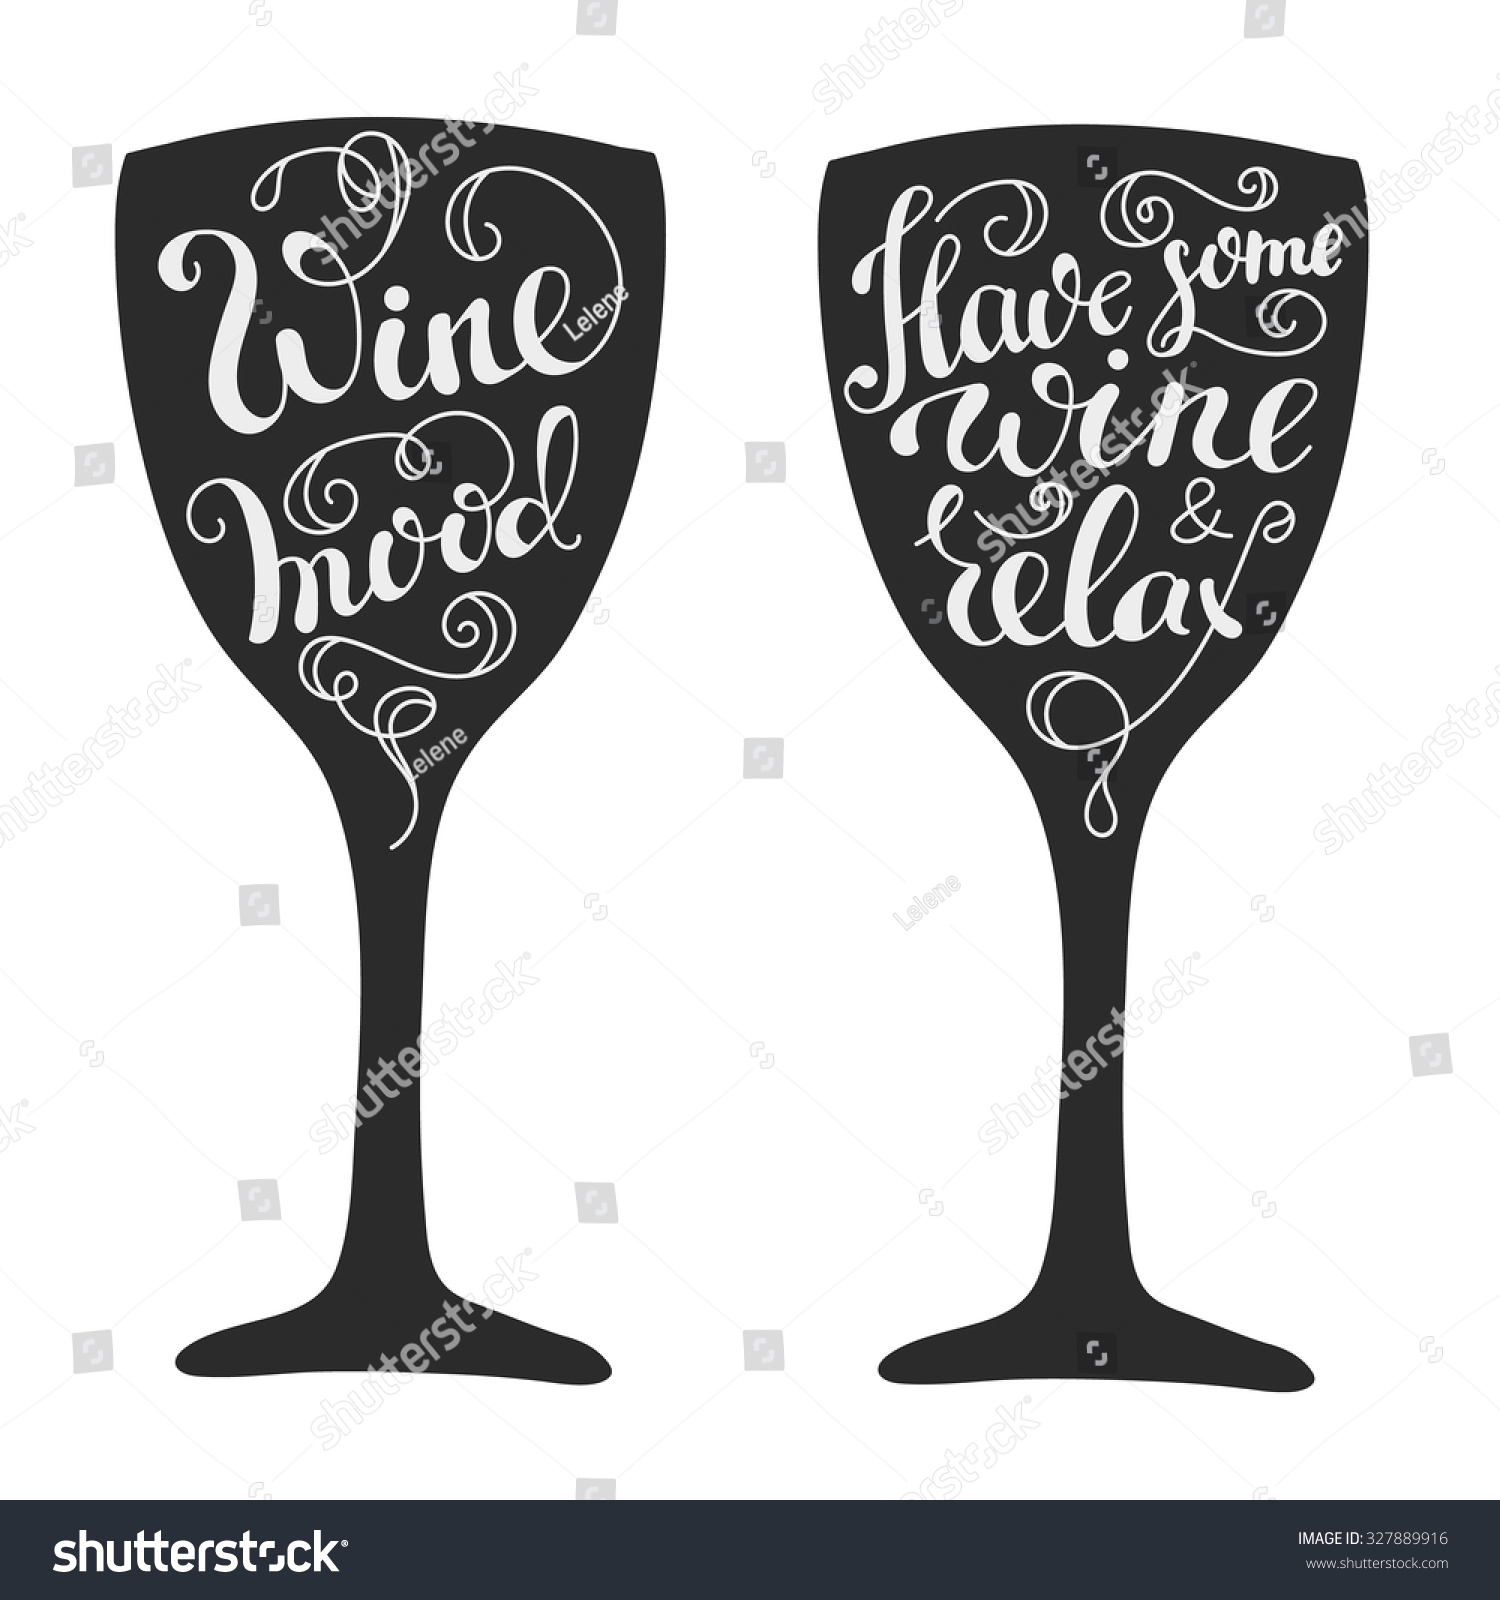 Quotes about wine on wine glass silhouette calligraphy style. Poster ...